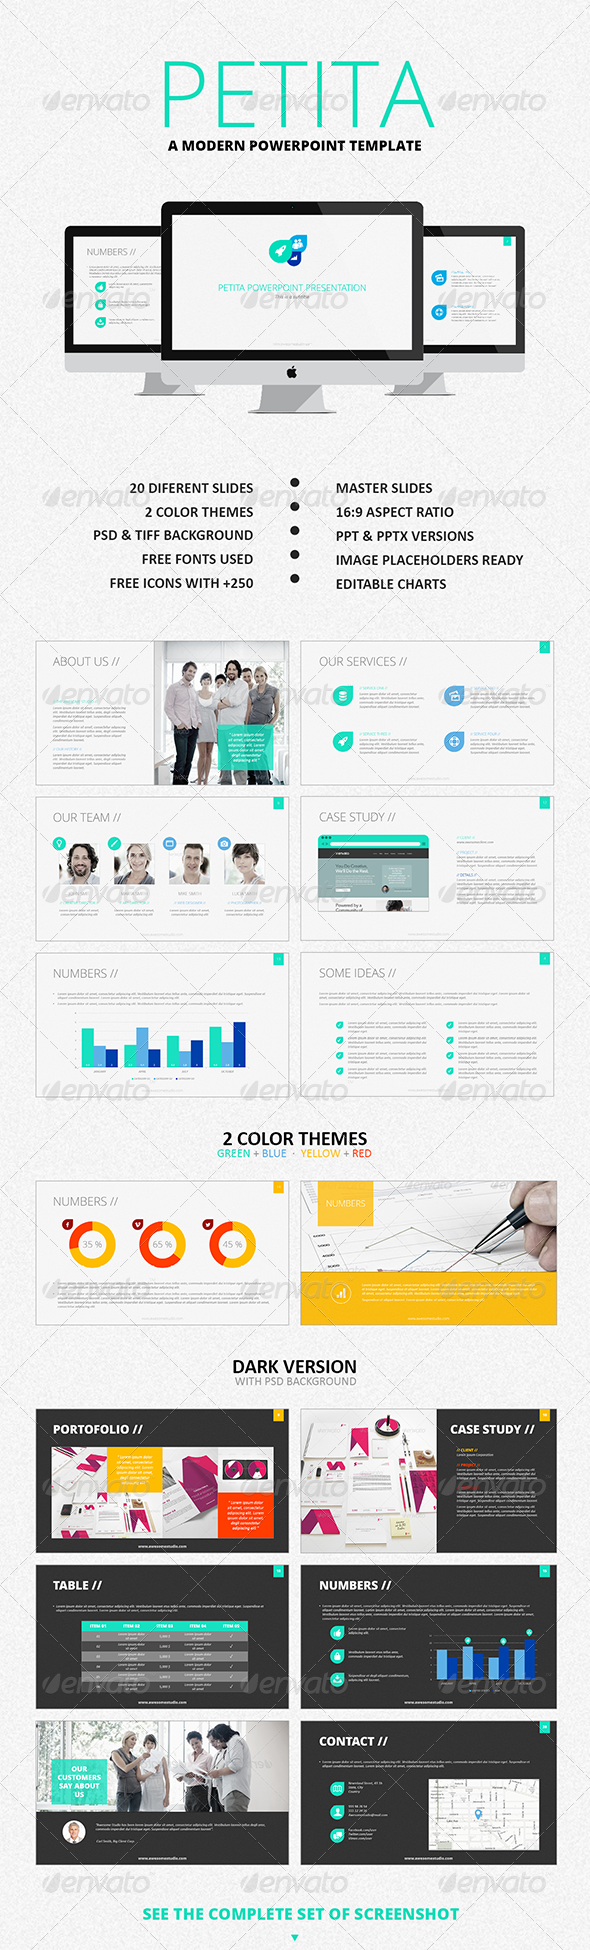 Petita powerpoint template powerpoint templates presentation petita powerpoint template powerpoint templates presentation templates toneelgroepblik Image collections